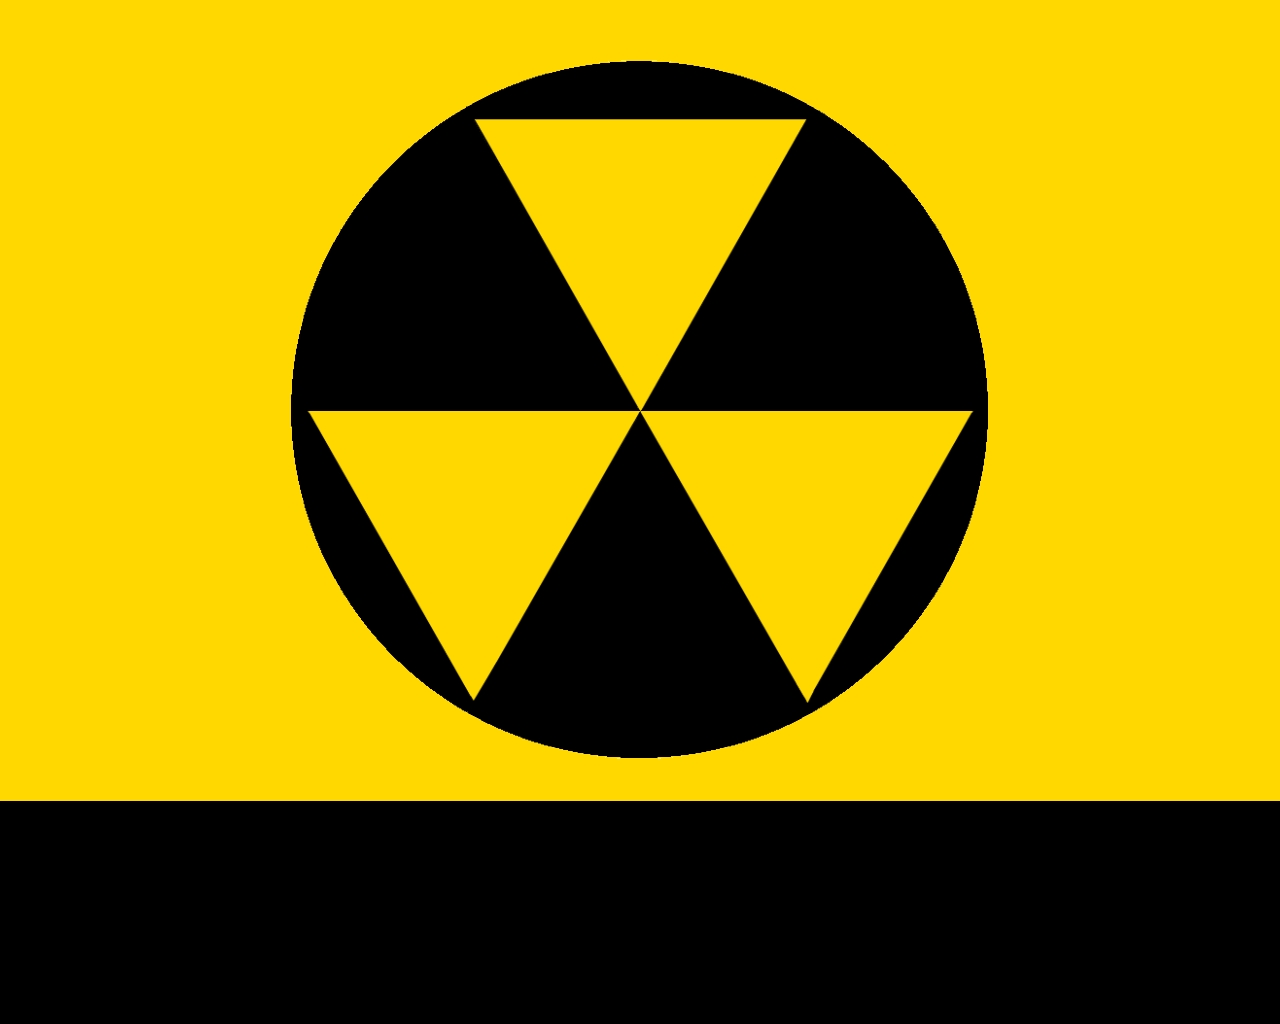 Sign Fallout Shelter Wallpapers Hd Desktop And Mobile Backgrounds